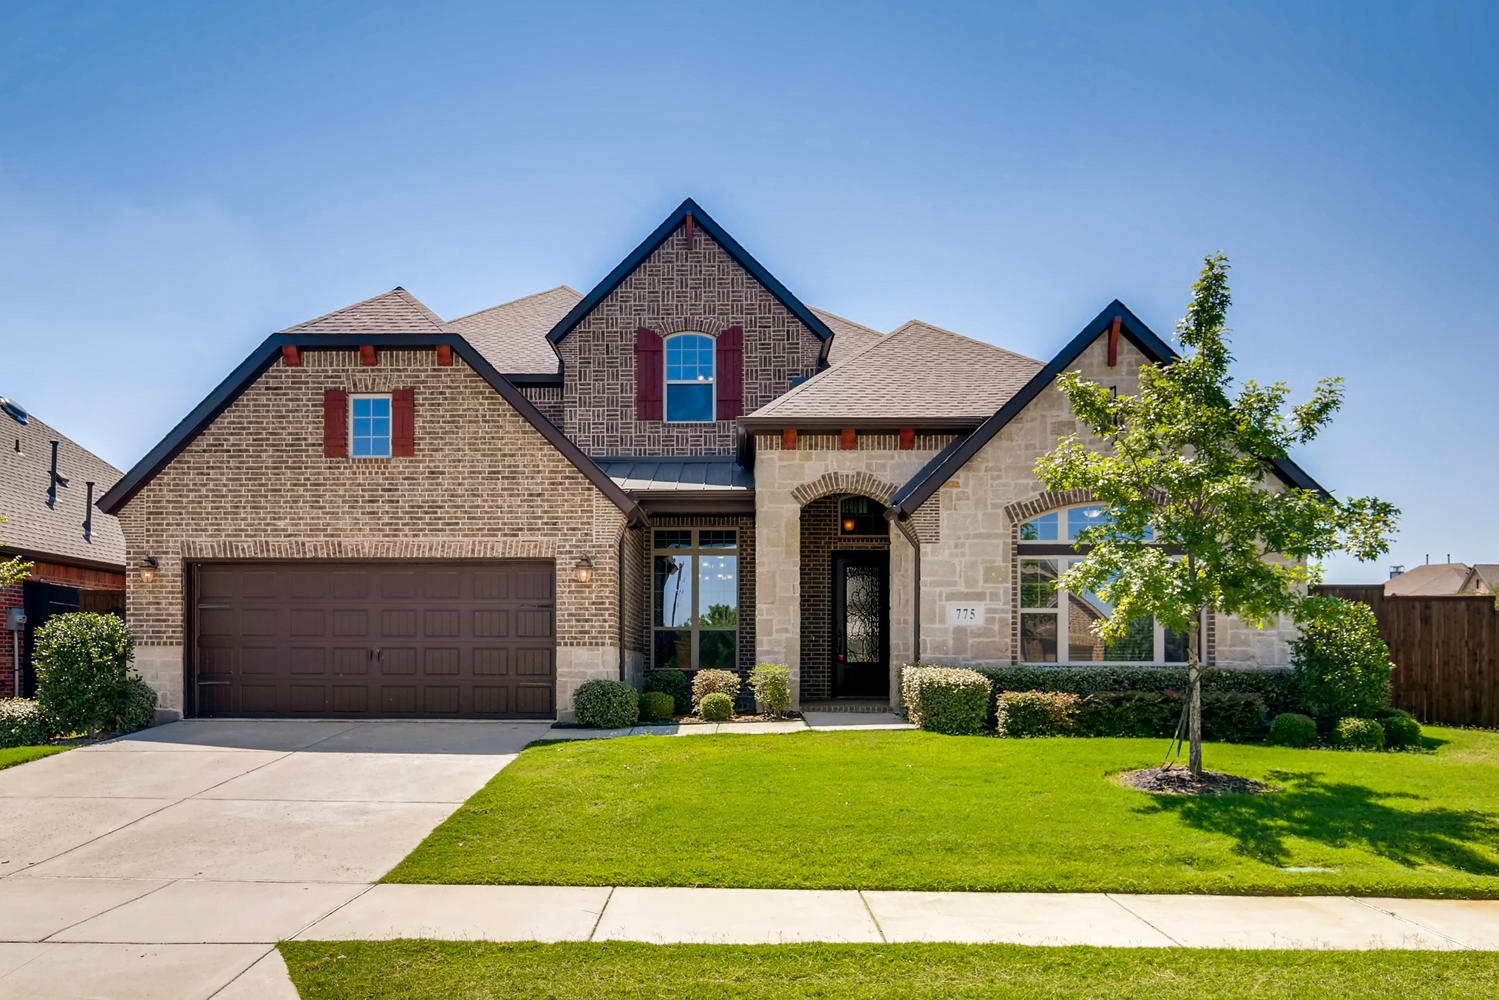 Photo of 775 Caveson Drive, Frisco, TX, 75034